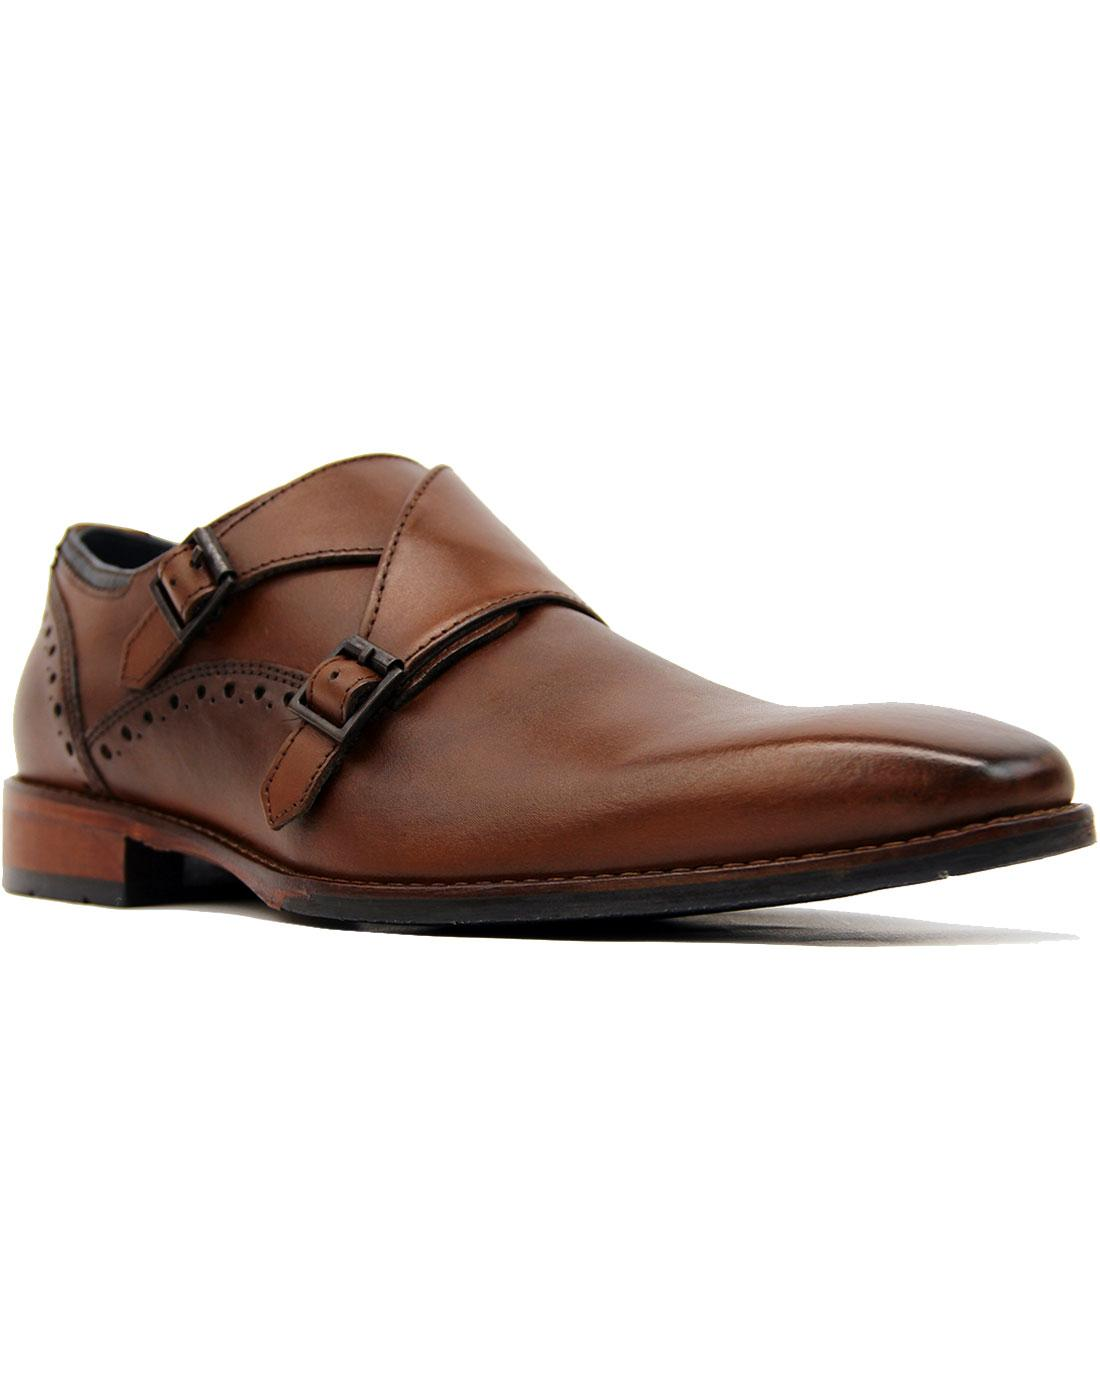 Ribchester GOODWIN SMITH Retro Monk Strap Shoes T